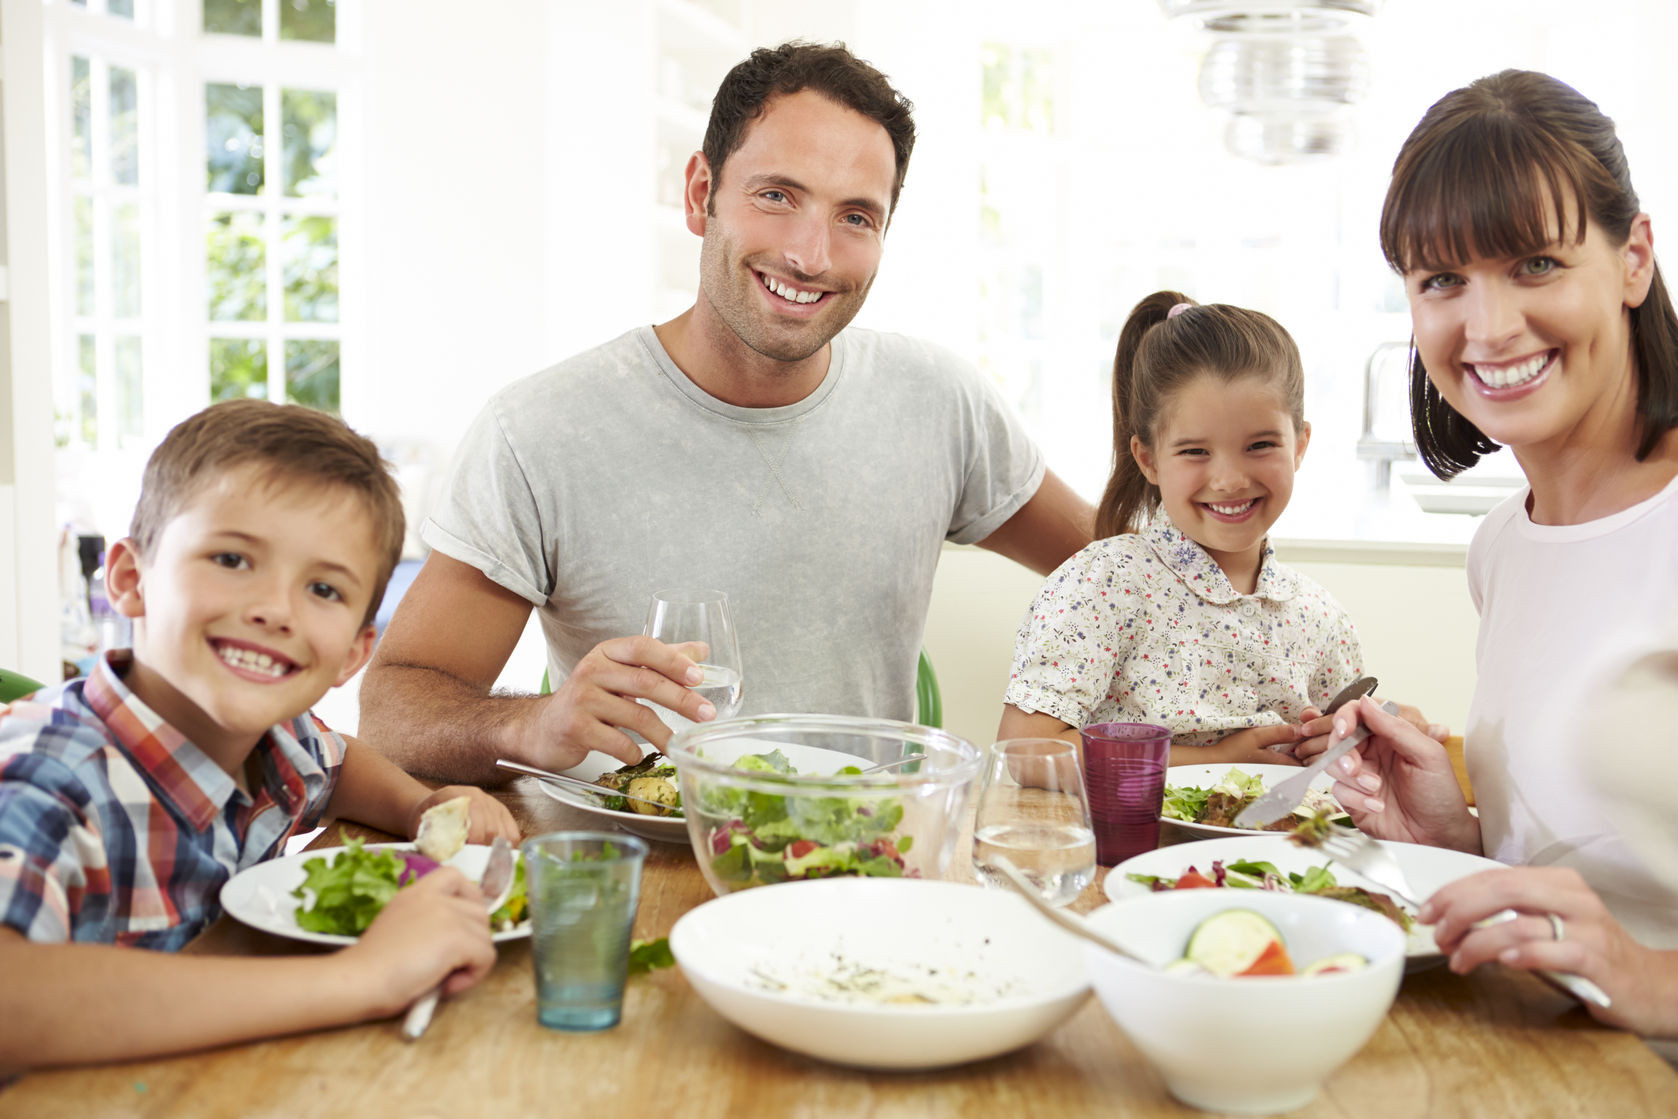 Healthy Family Breakfast  For ting 3 simple steps for a healthy family